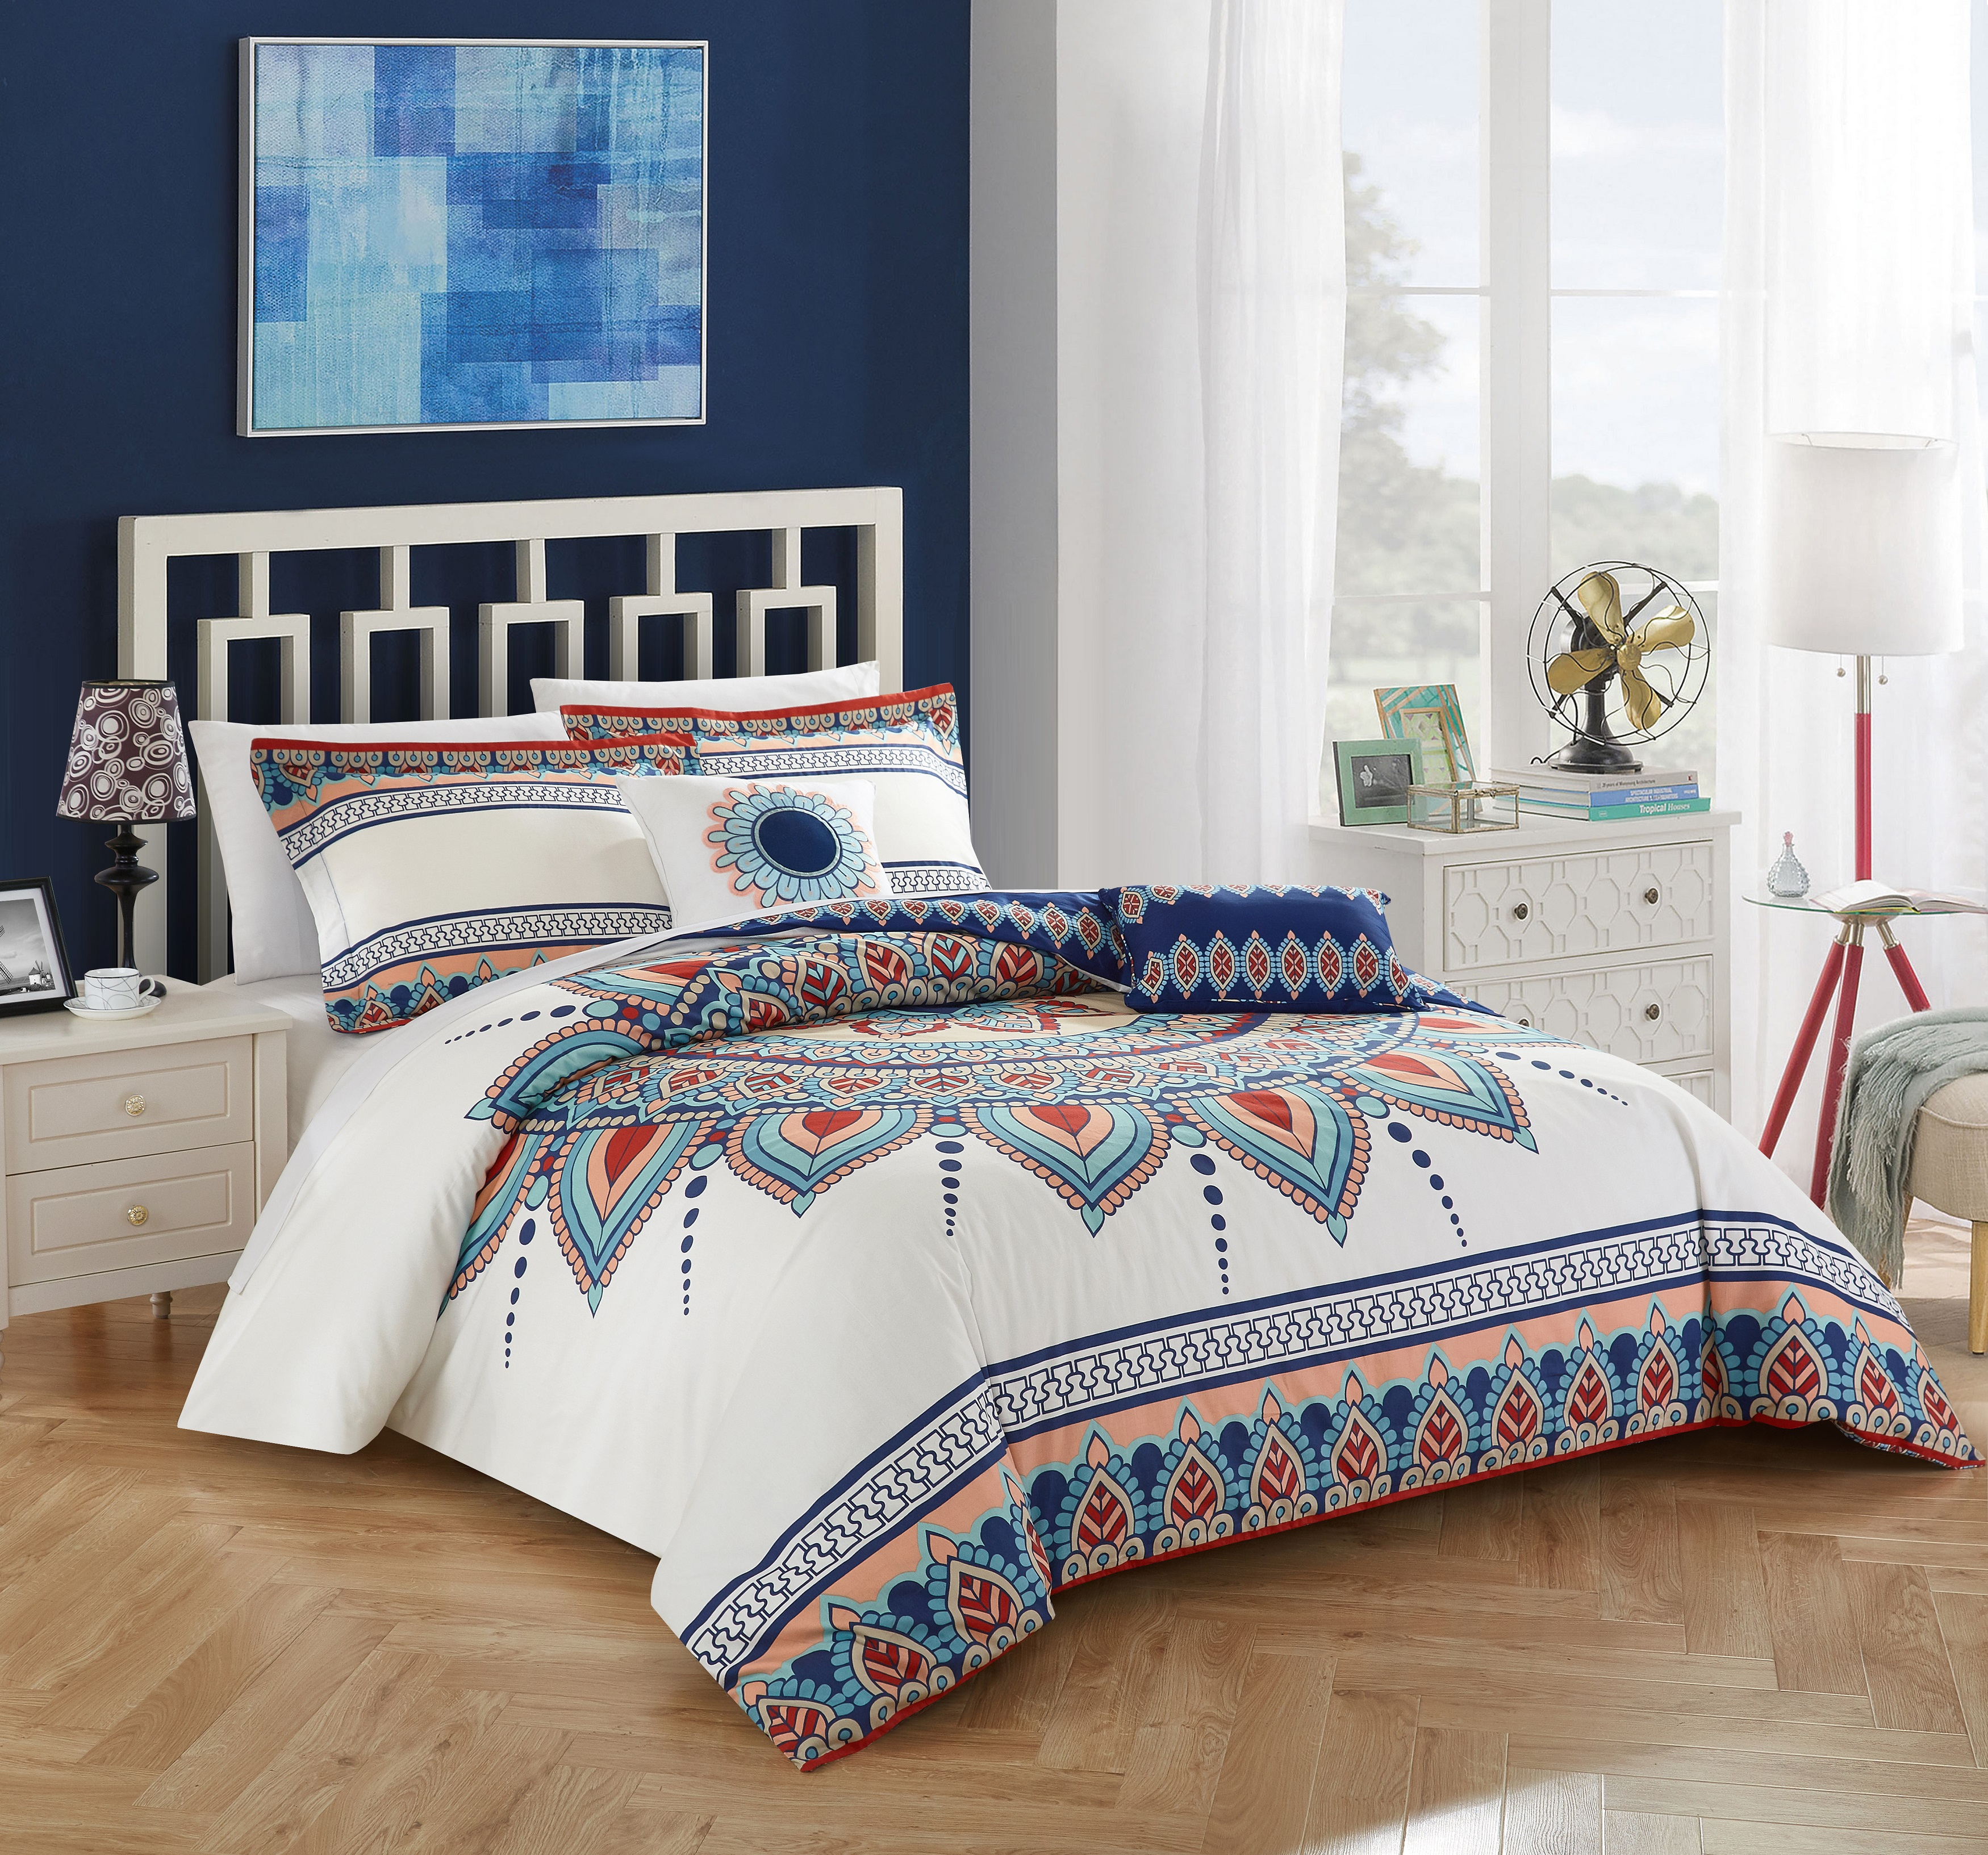 Chic Home 5-Piece Izta 100% Cotton 200 Thread Count Extra Large Panel Frame Boho Printed REVERSIBLE Queen Comforter Set Blue